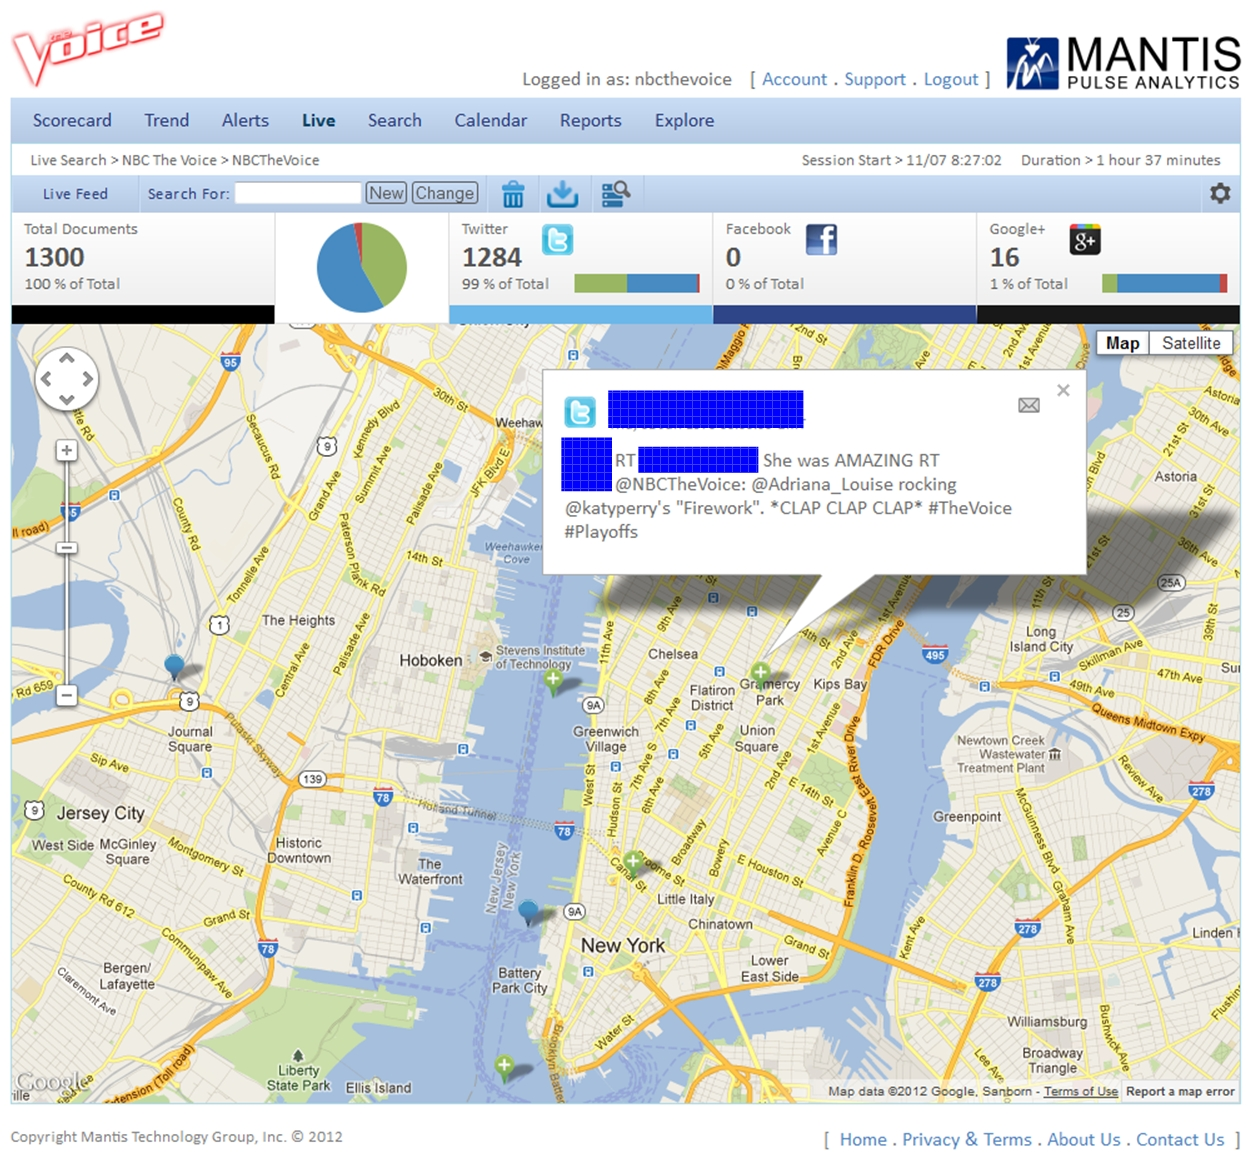 Mantis Pulse Analytics Monitoring and Sentiment Analysis for NBC's The Voice - Zoomed In Map View